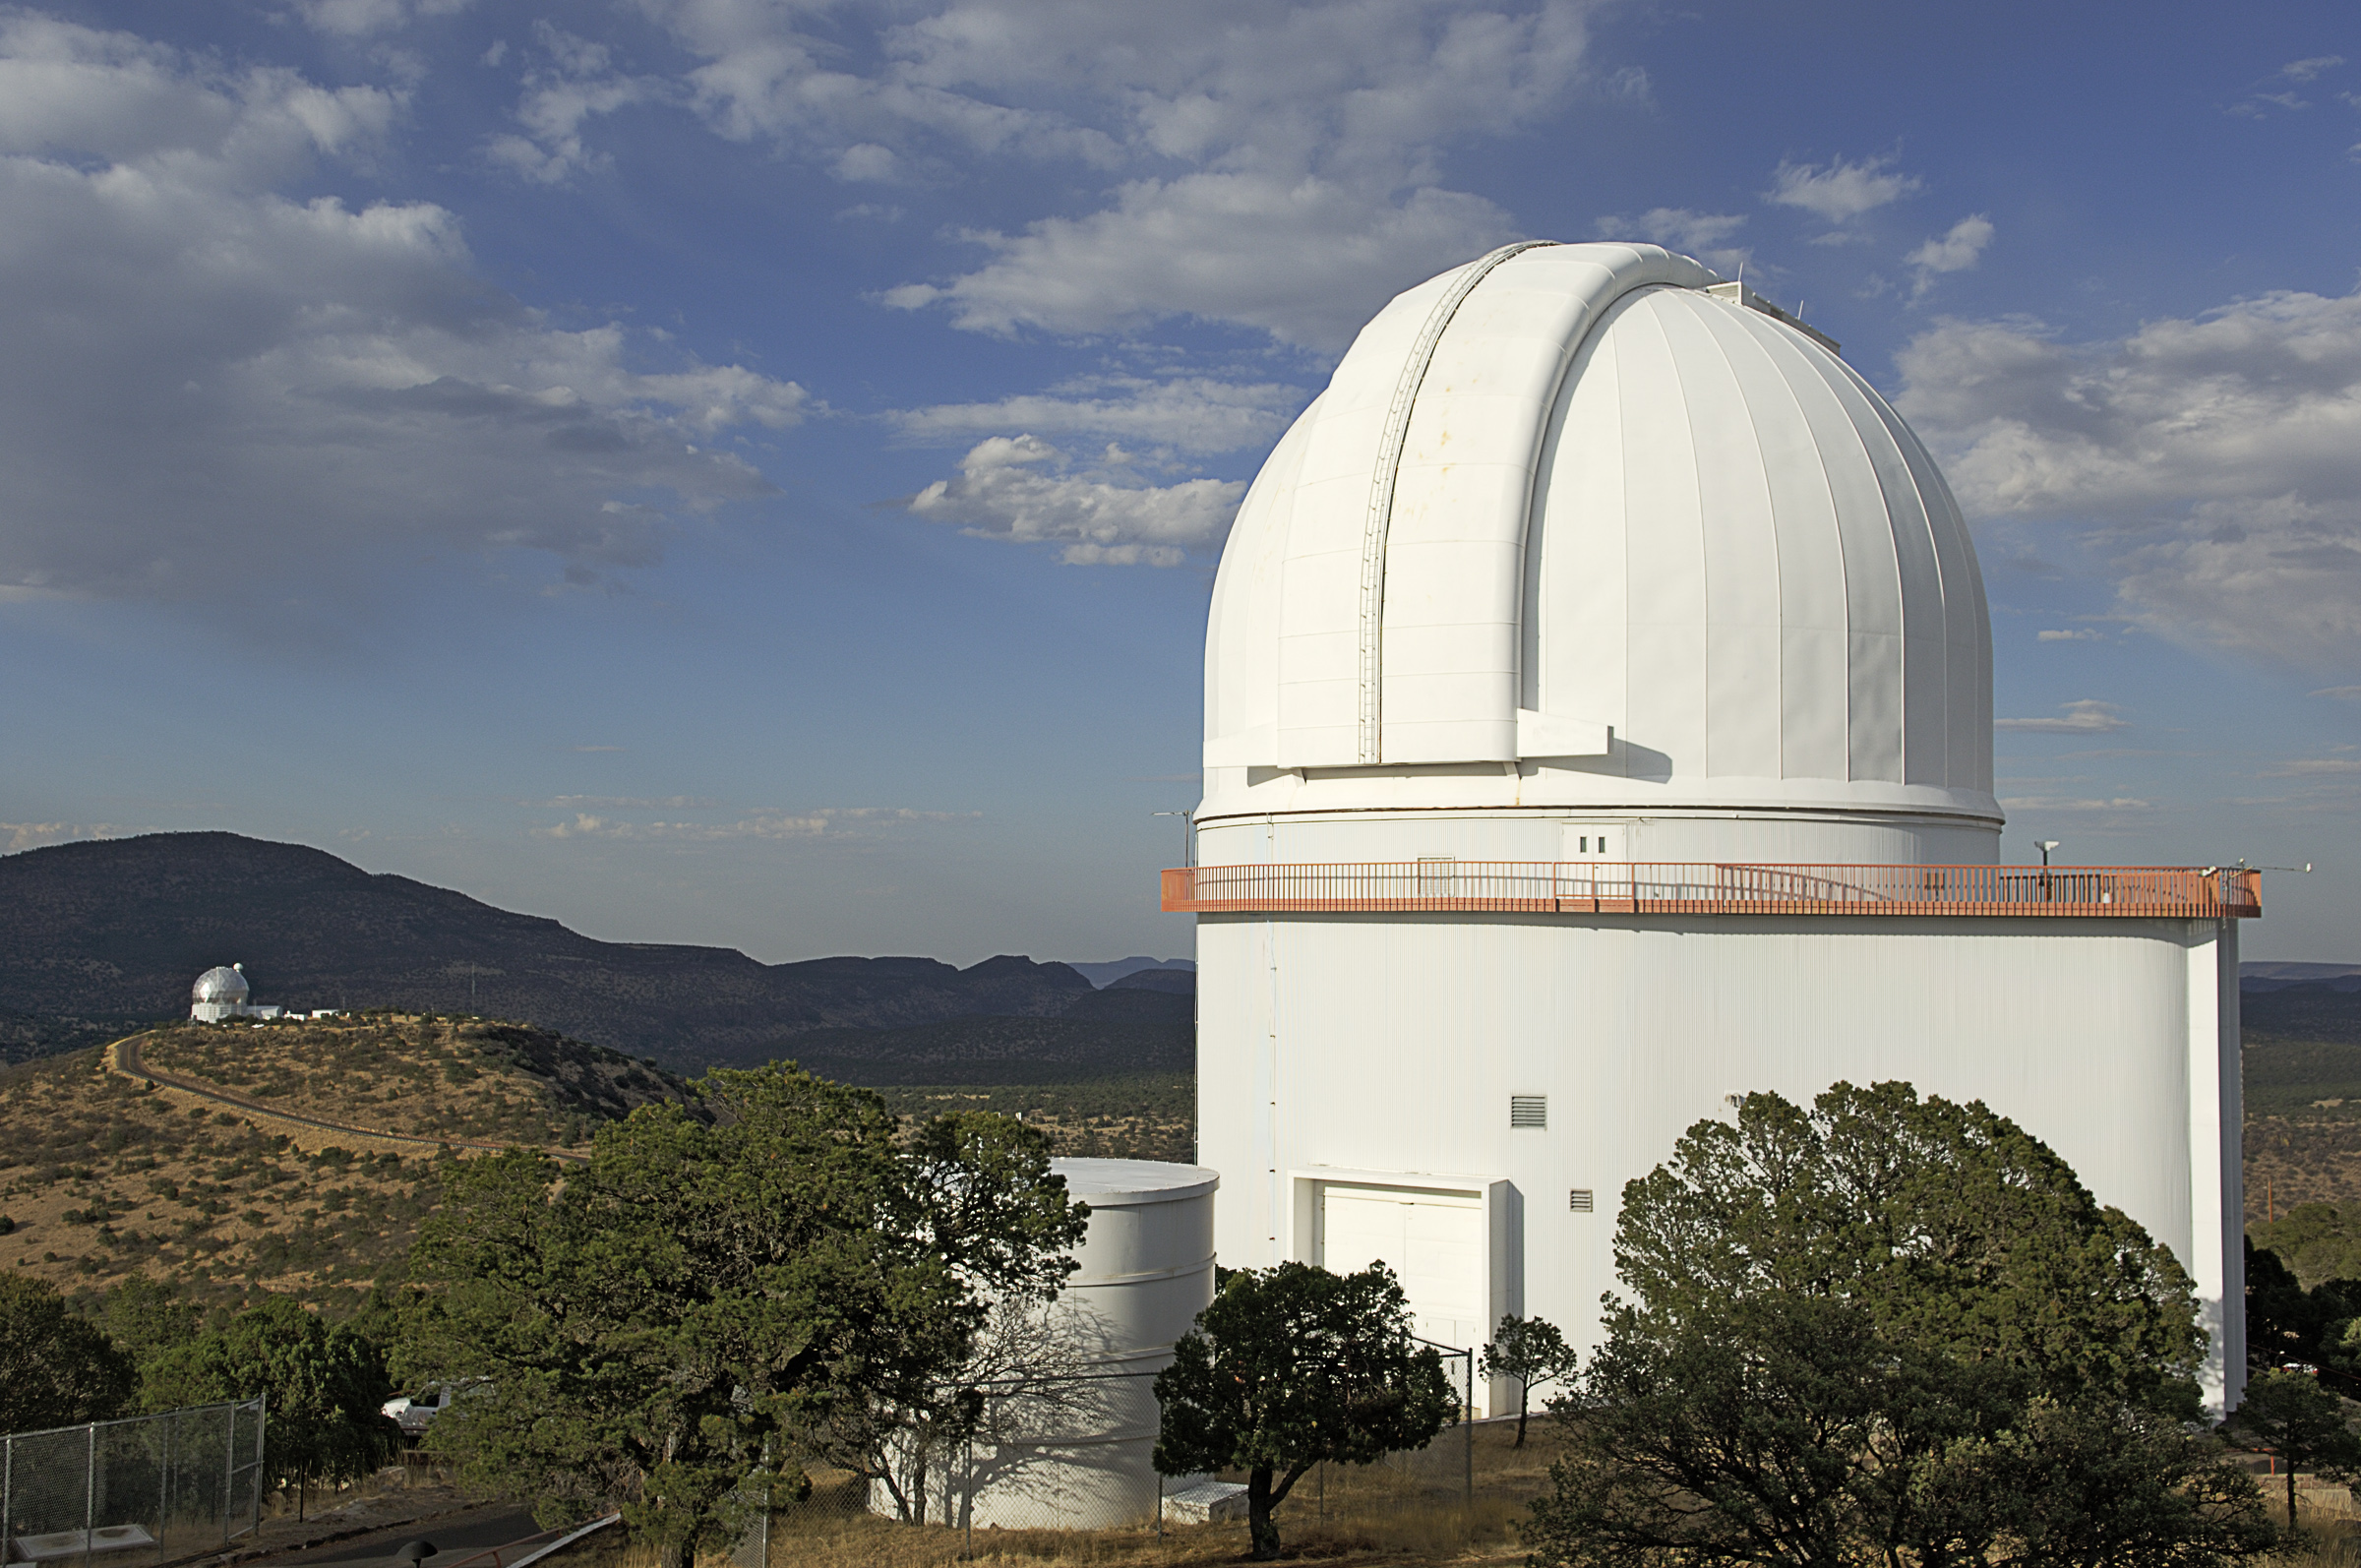 Dome of the Harlan J. Smith Telescope | McDonald Observatory